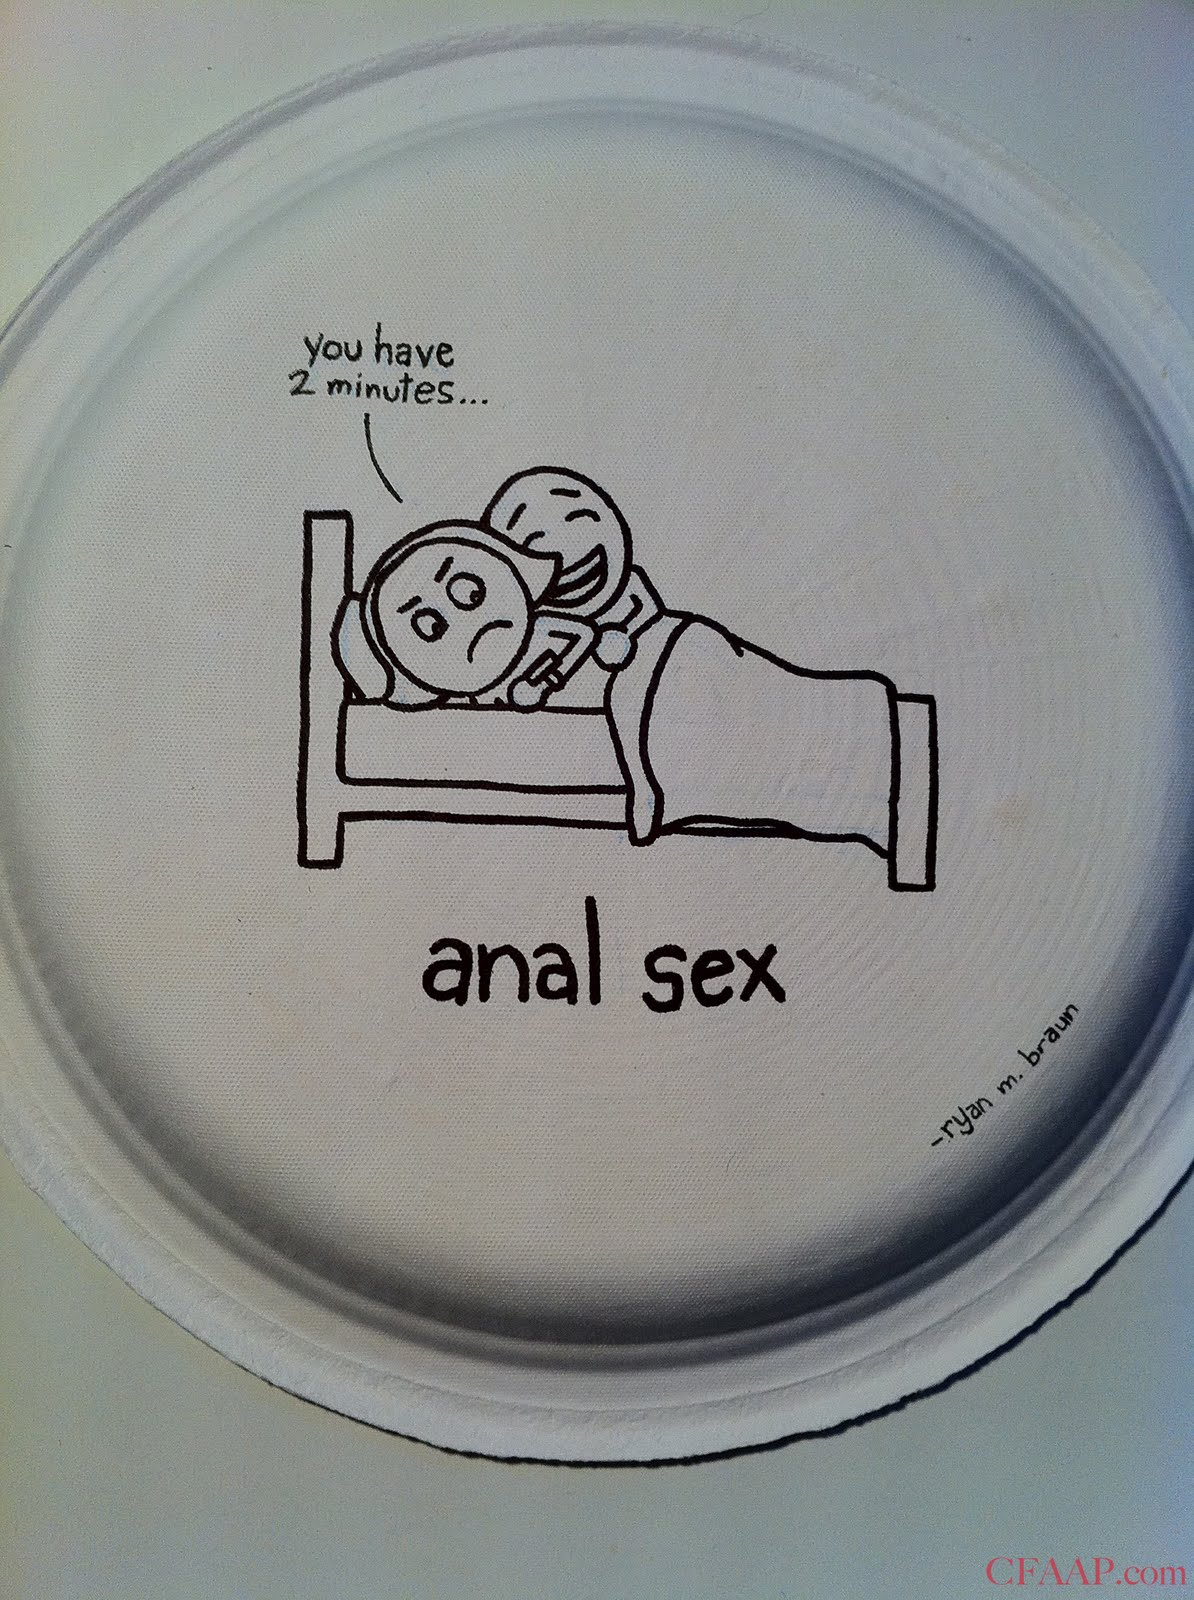 Funny%2BPlates%2BAnal%2BSex Solid: First time having anal sex? Karrine has you covered.